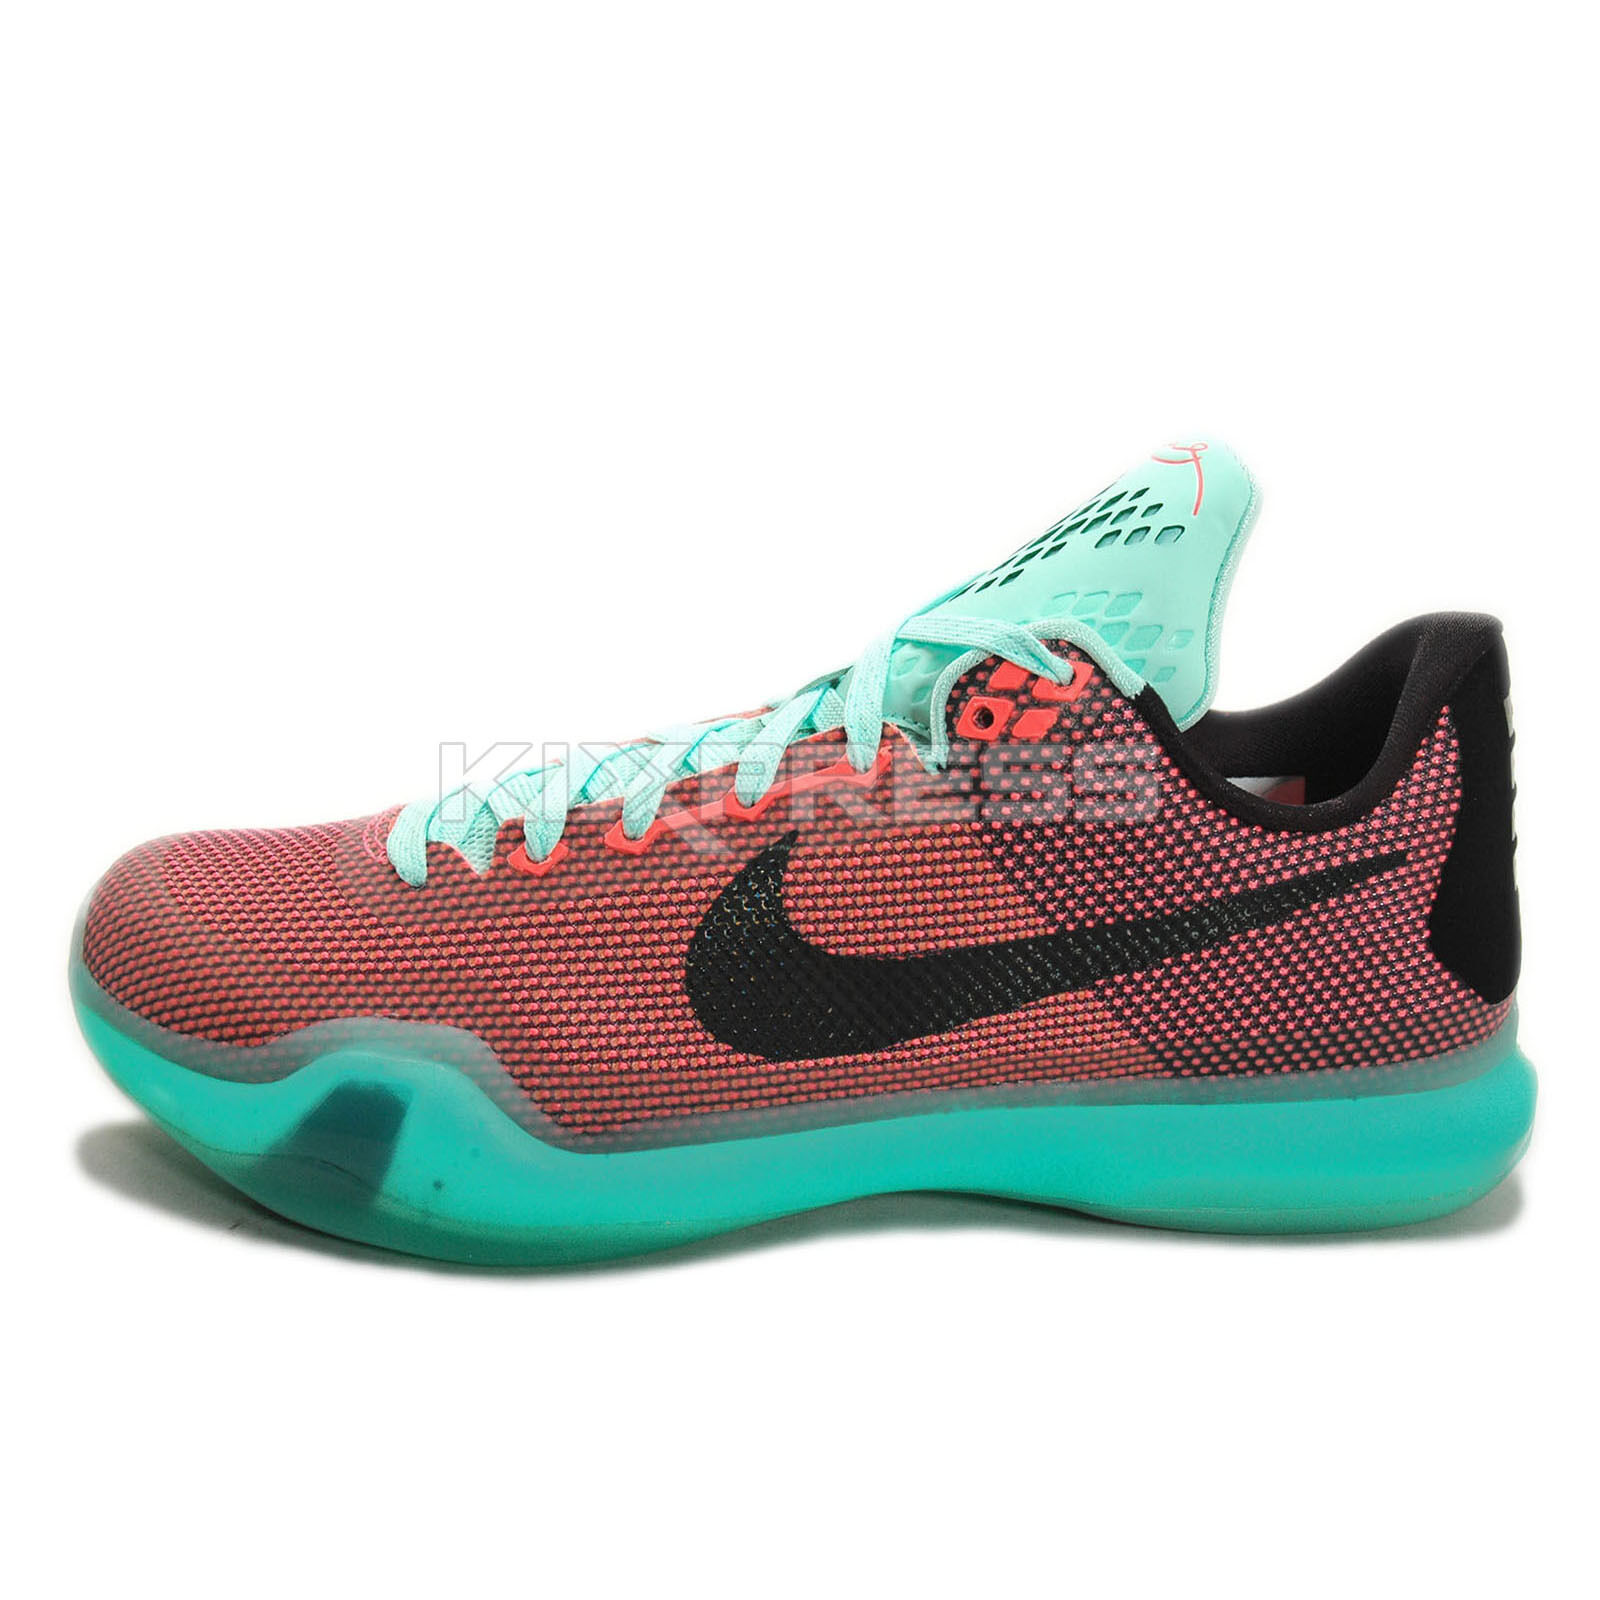 Nike Kobe X EP Price reduction Basketball Easter Hot Lava/Artesian Teal New shoes for men and women, limited time discount